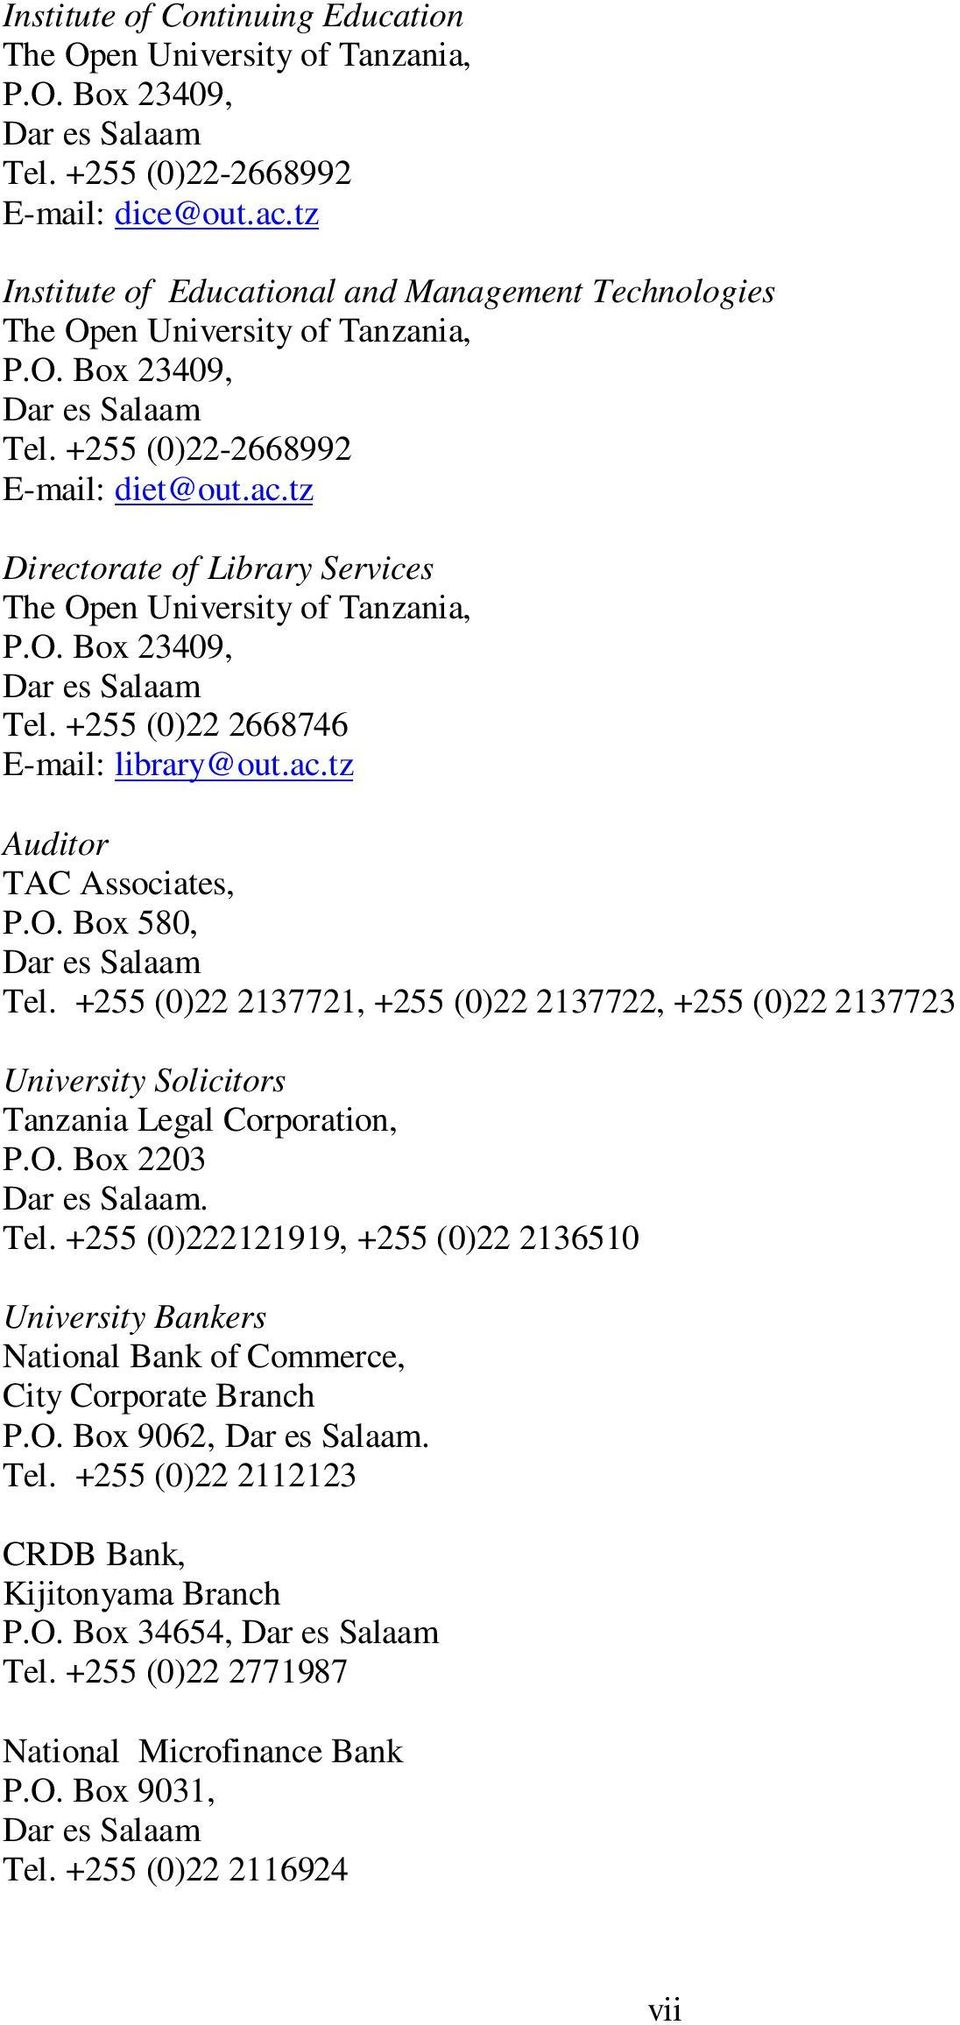 tz Directorate of Library Services The Open University of Tanzania, P.O. Box 23409, Dar es Salaam Tel. +255 (0)22 2668746 E-mail: library@out.ac.tz Auditor TAC Associates, P.O. Box 580, Dar es Salaam Tel.